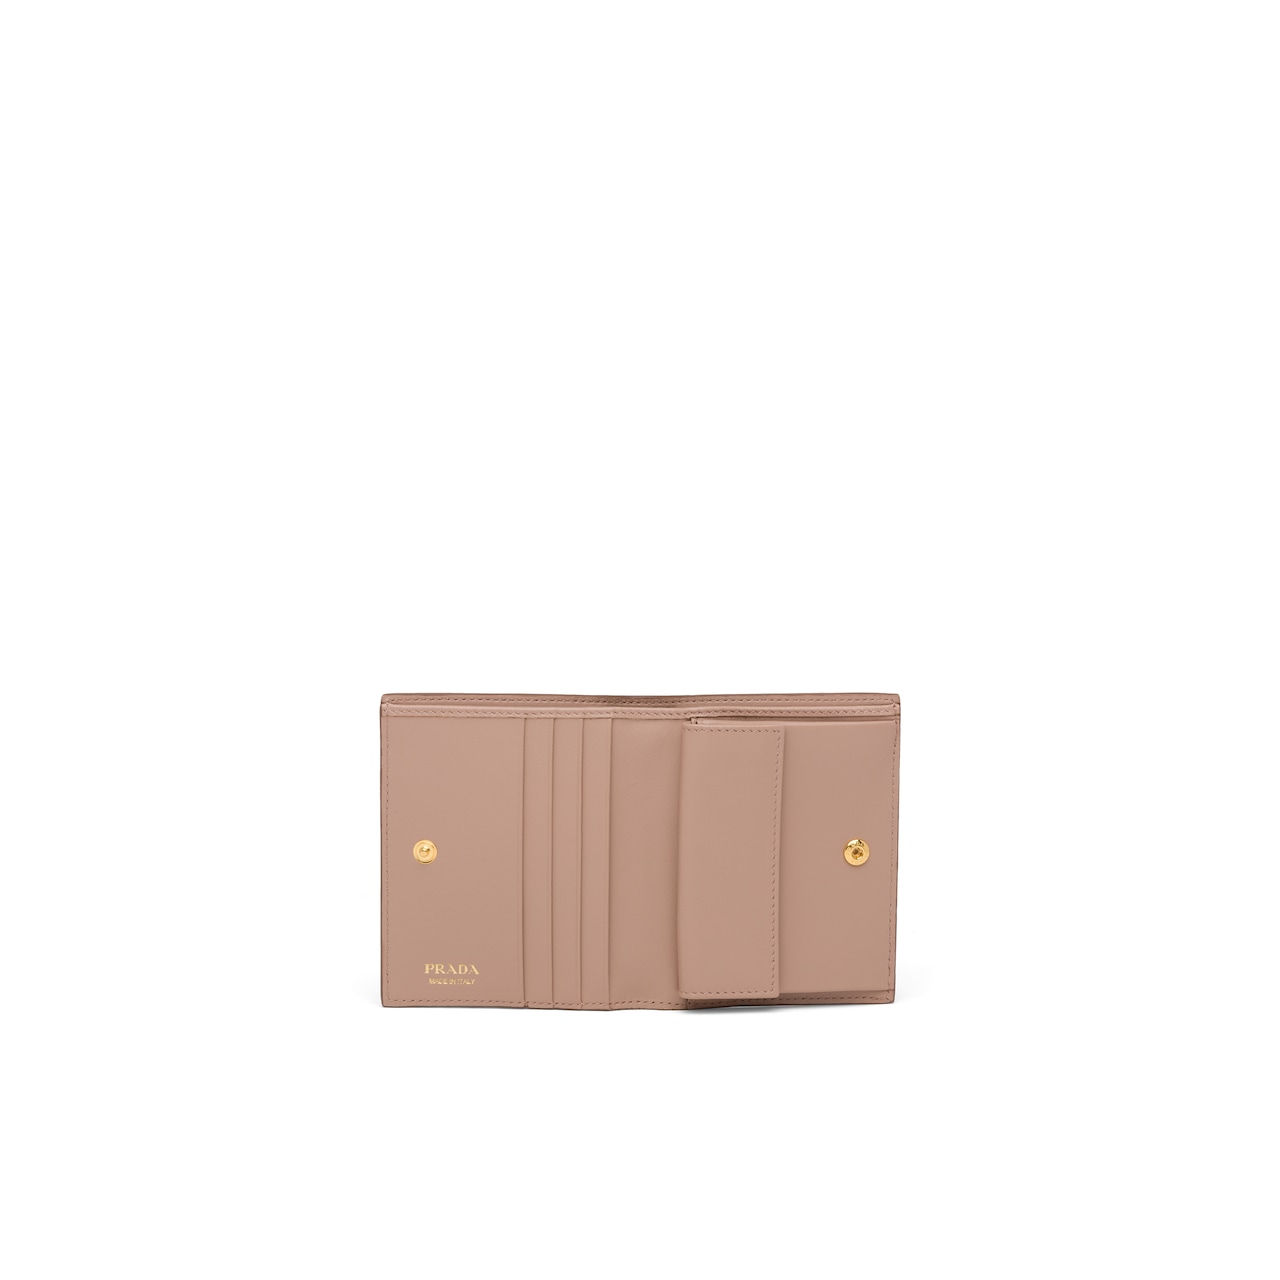 Prada Small Leather Wallet 2